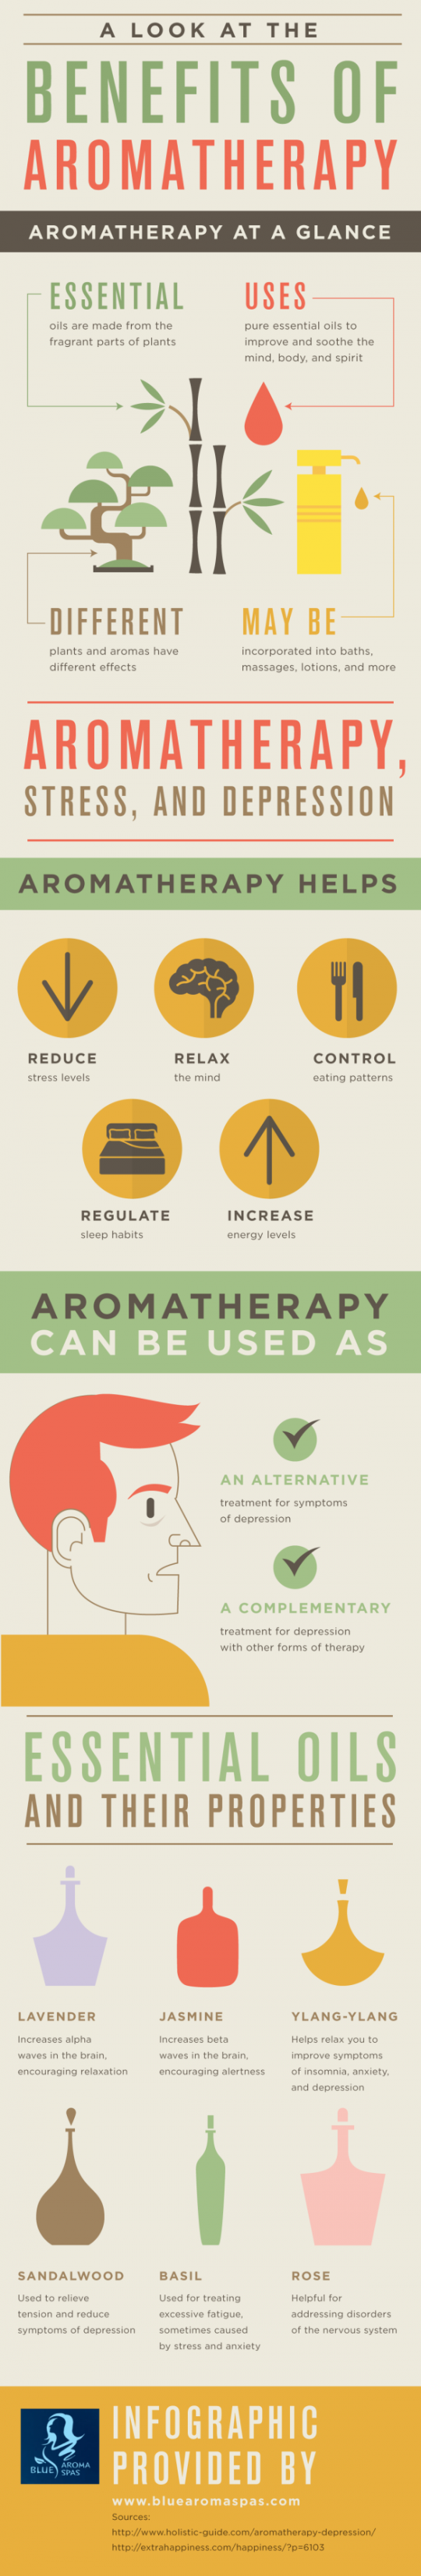 A Look at the Benefits of Aromatherapy